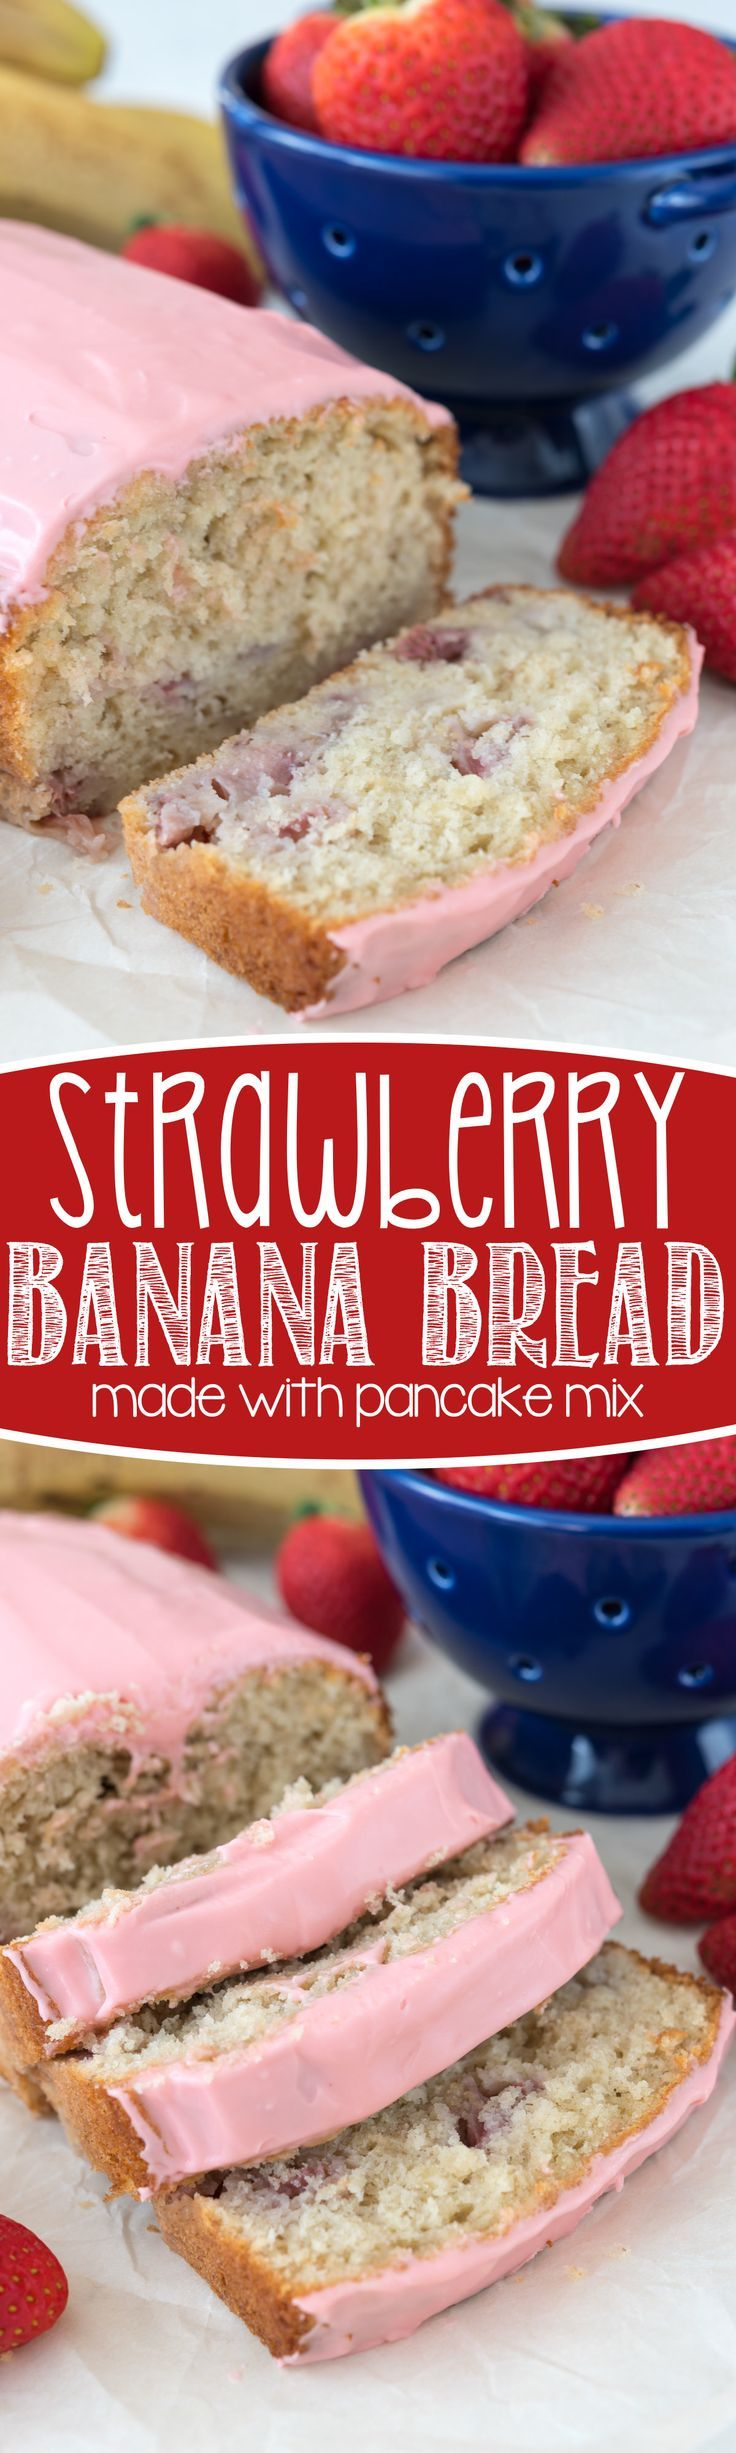 Easy Strawberry Banana Bread - this easy banana bread recipe starts with a pancake mix and is full of strawberries and a strawberry glaze!